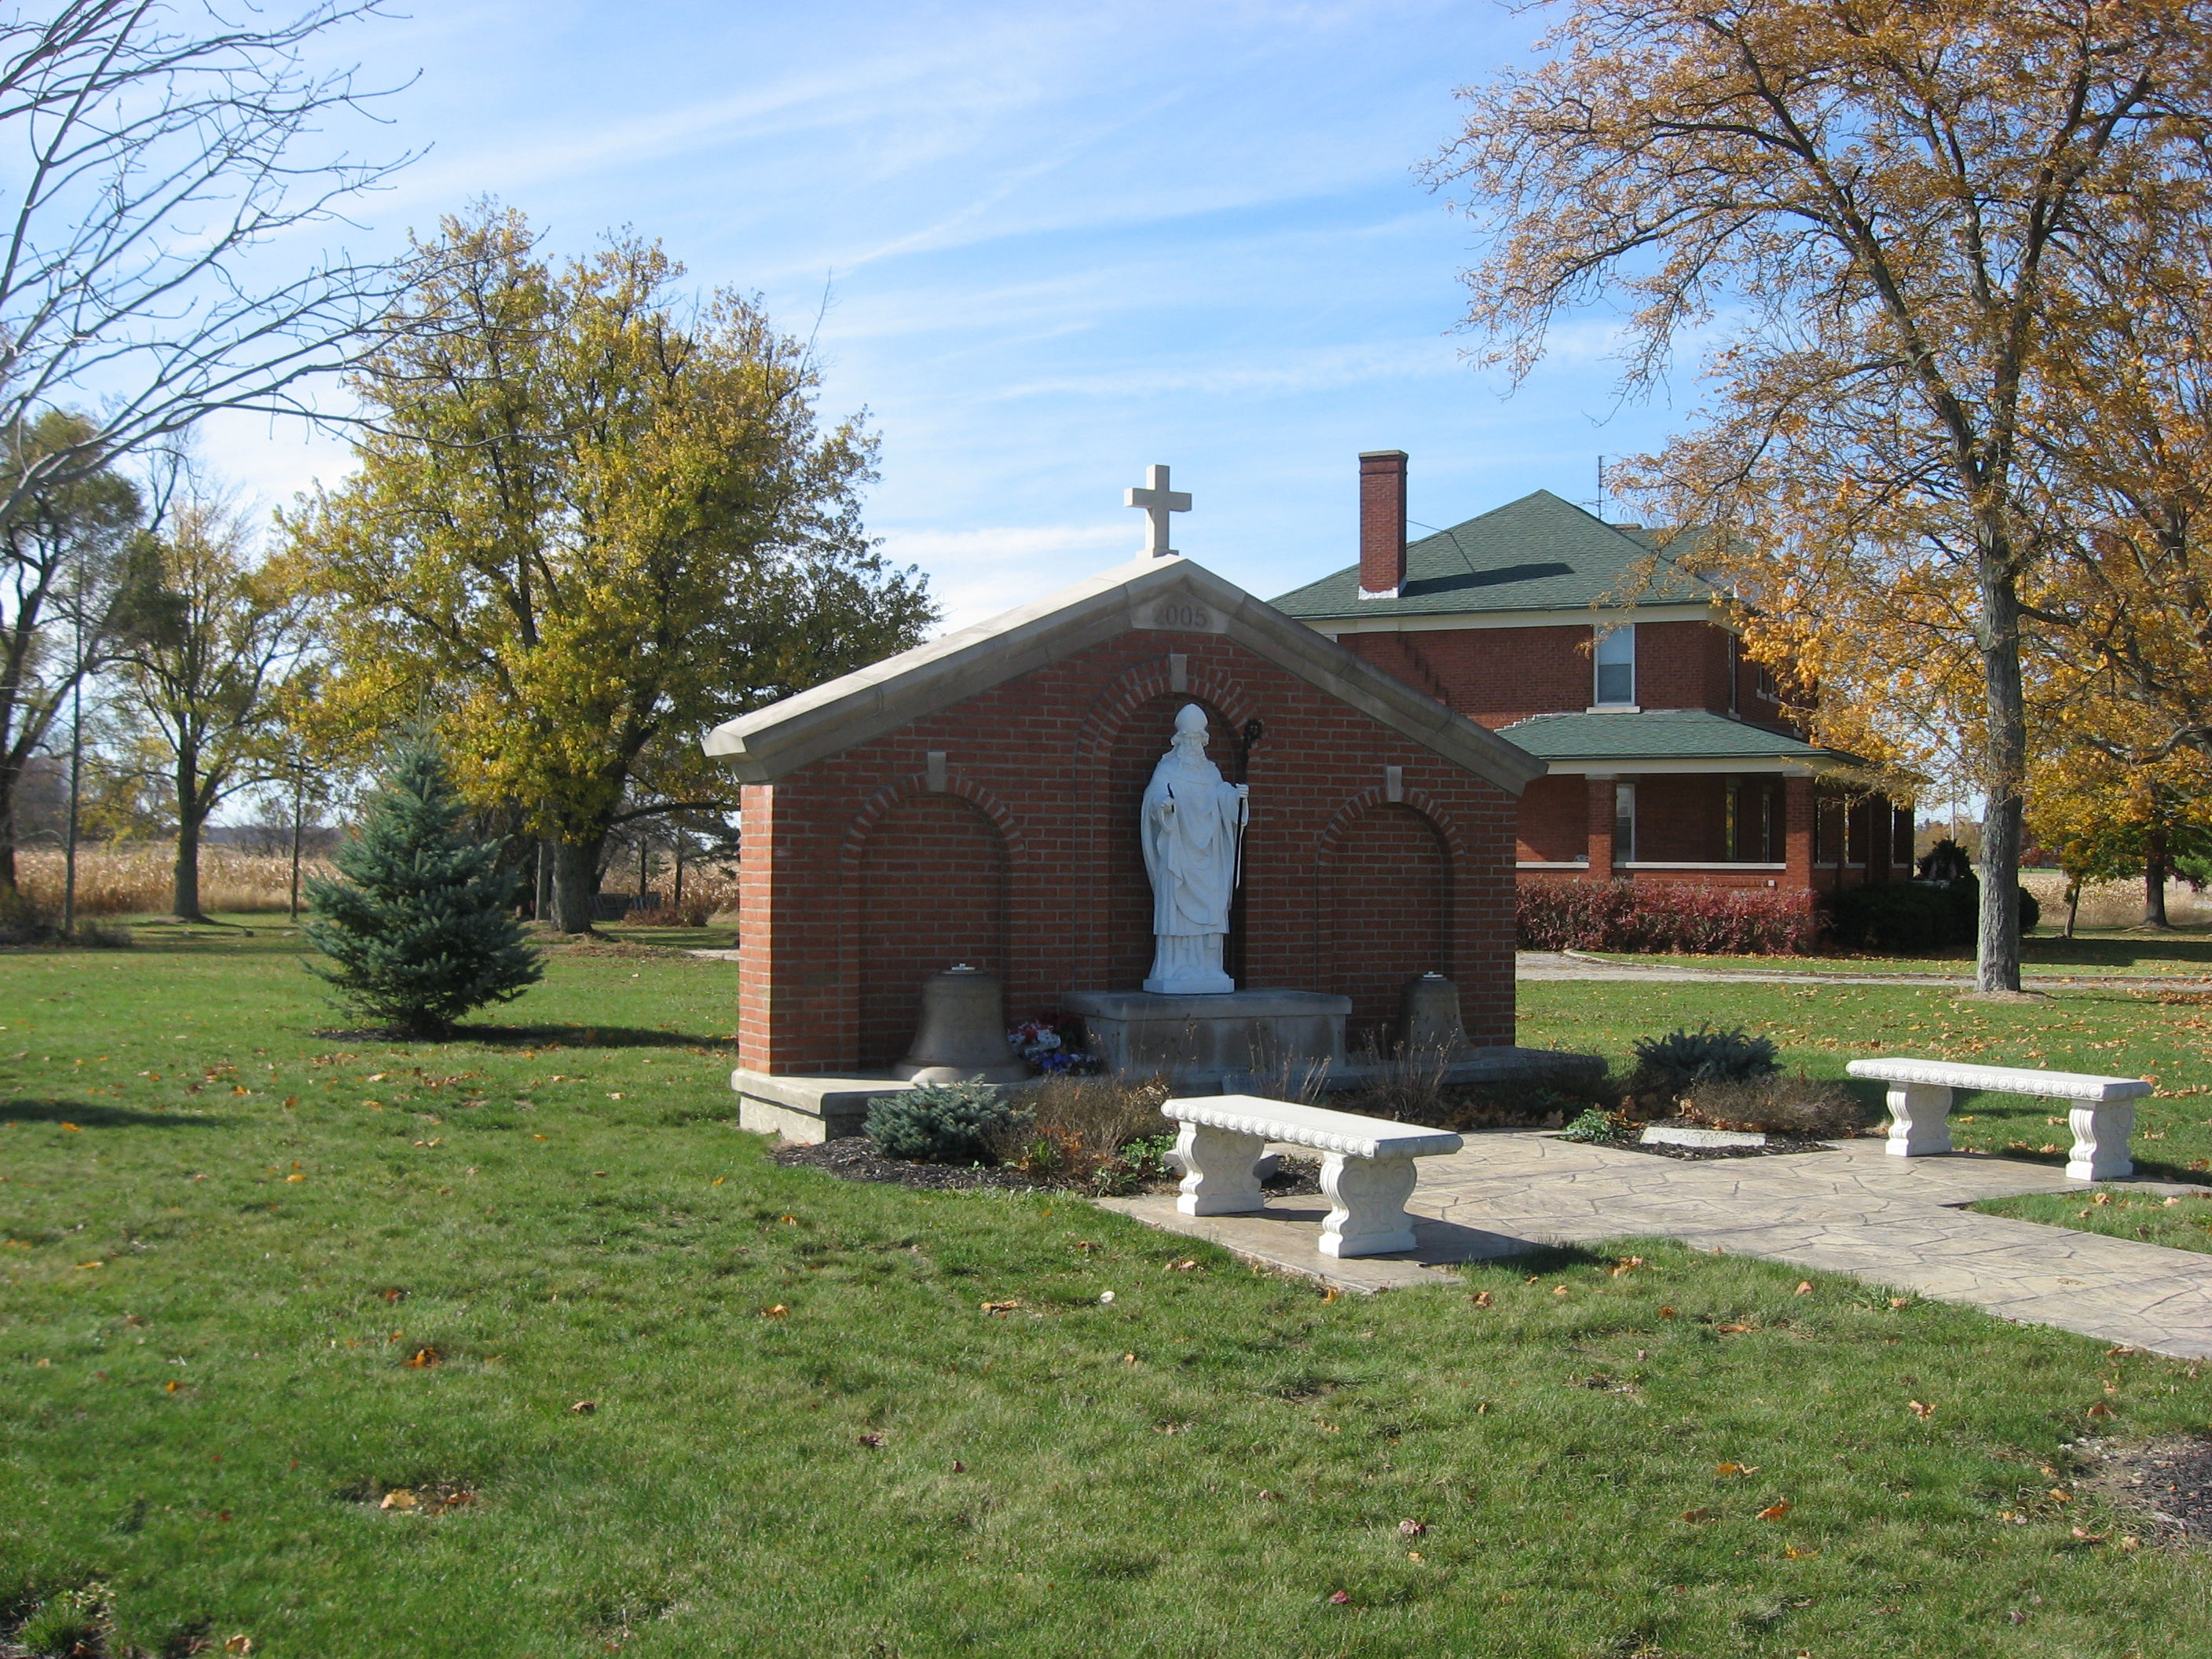 catholic singles in van buren county Homeless accommodation  those seeking temporary shelter in the mobile and baldwin county area may wish to consider the family  2707 e van buren.